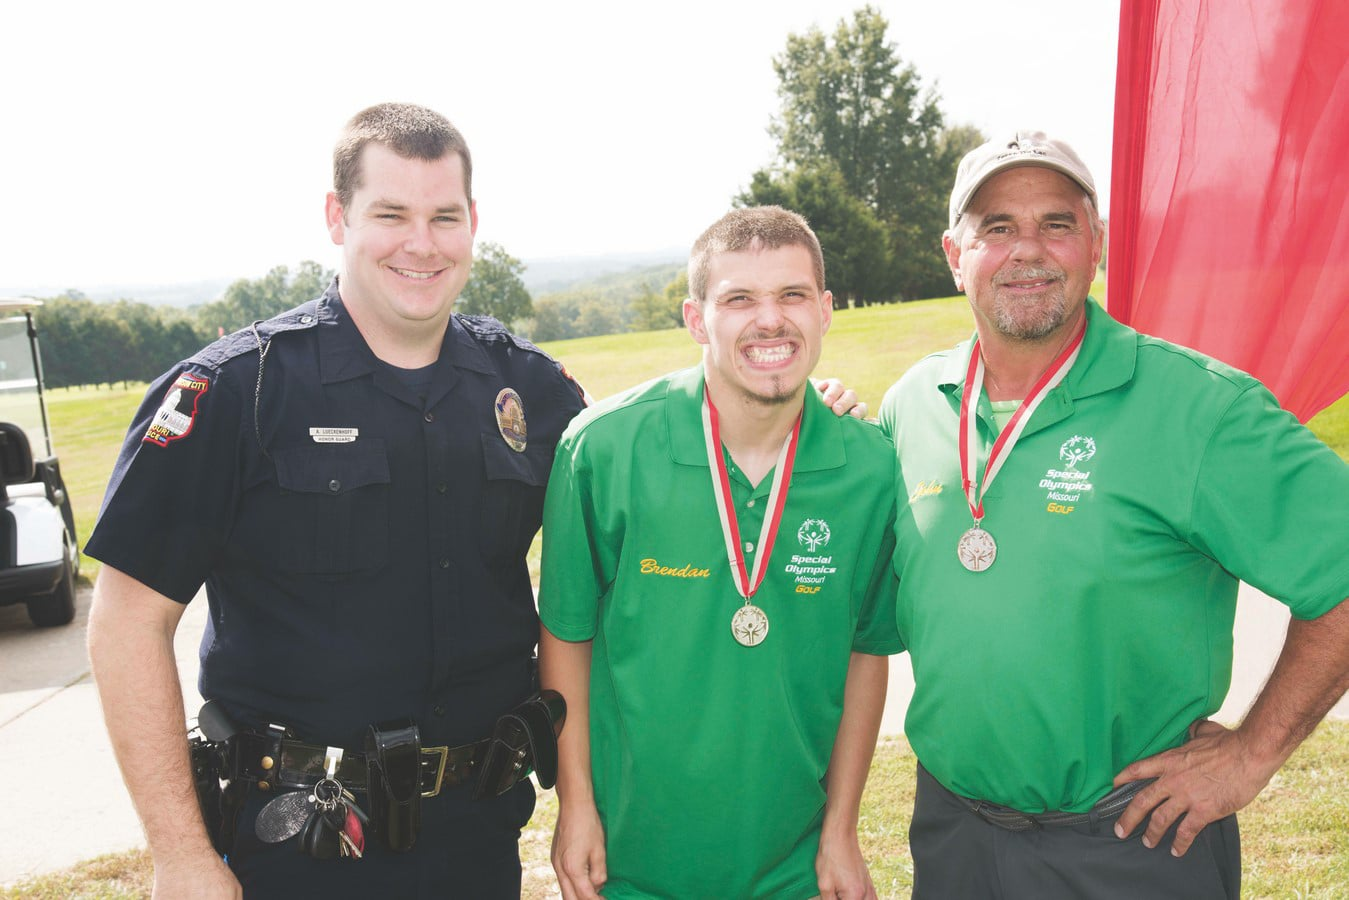 Athletes withmedals around theirs necks smile at the camera while posing with police officer